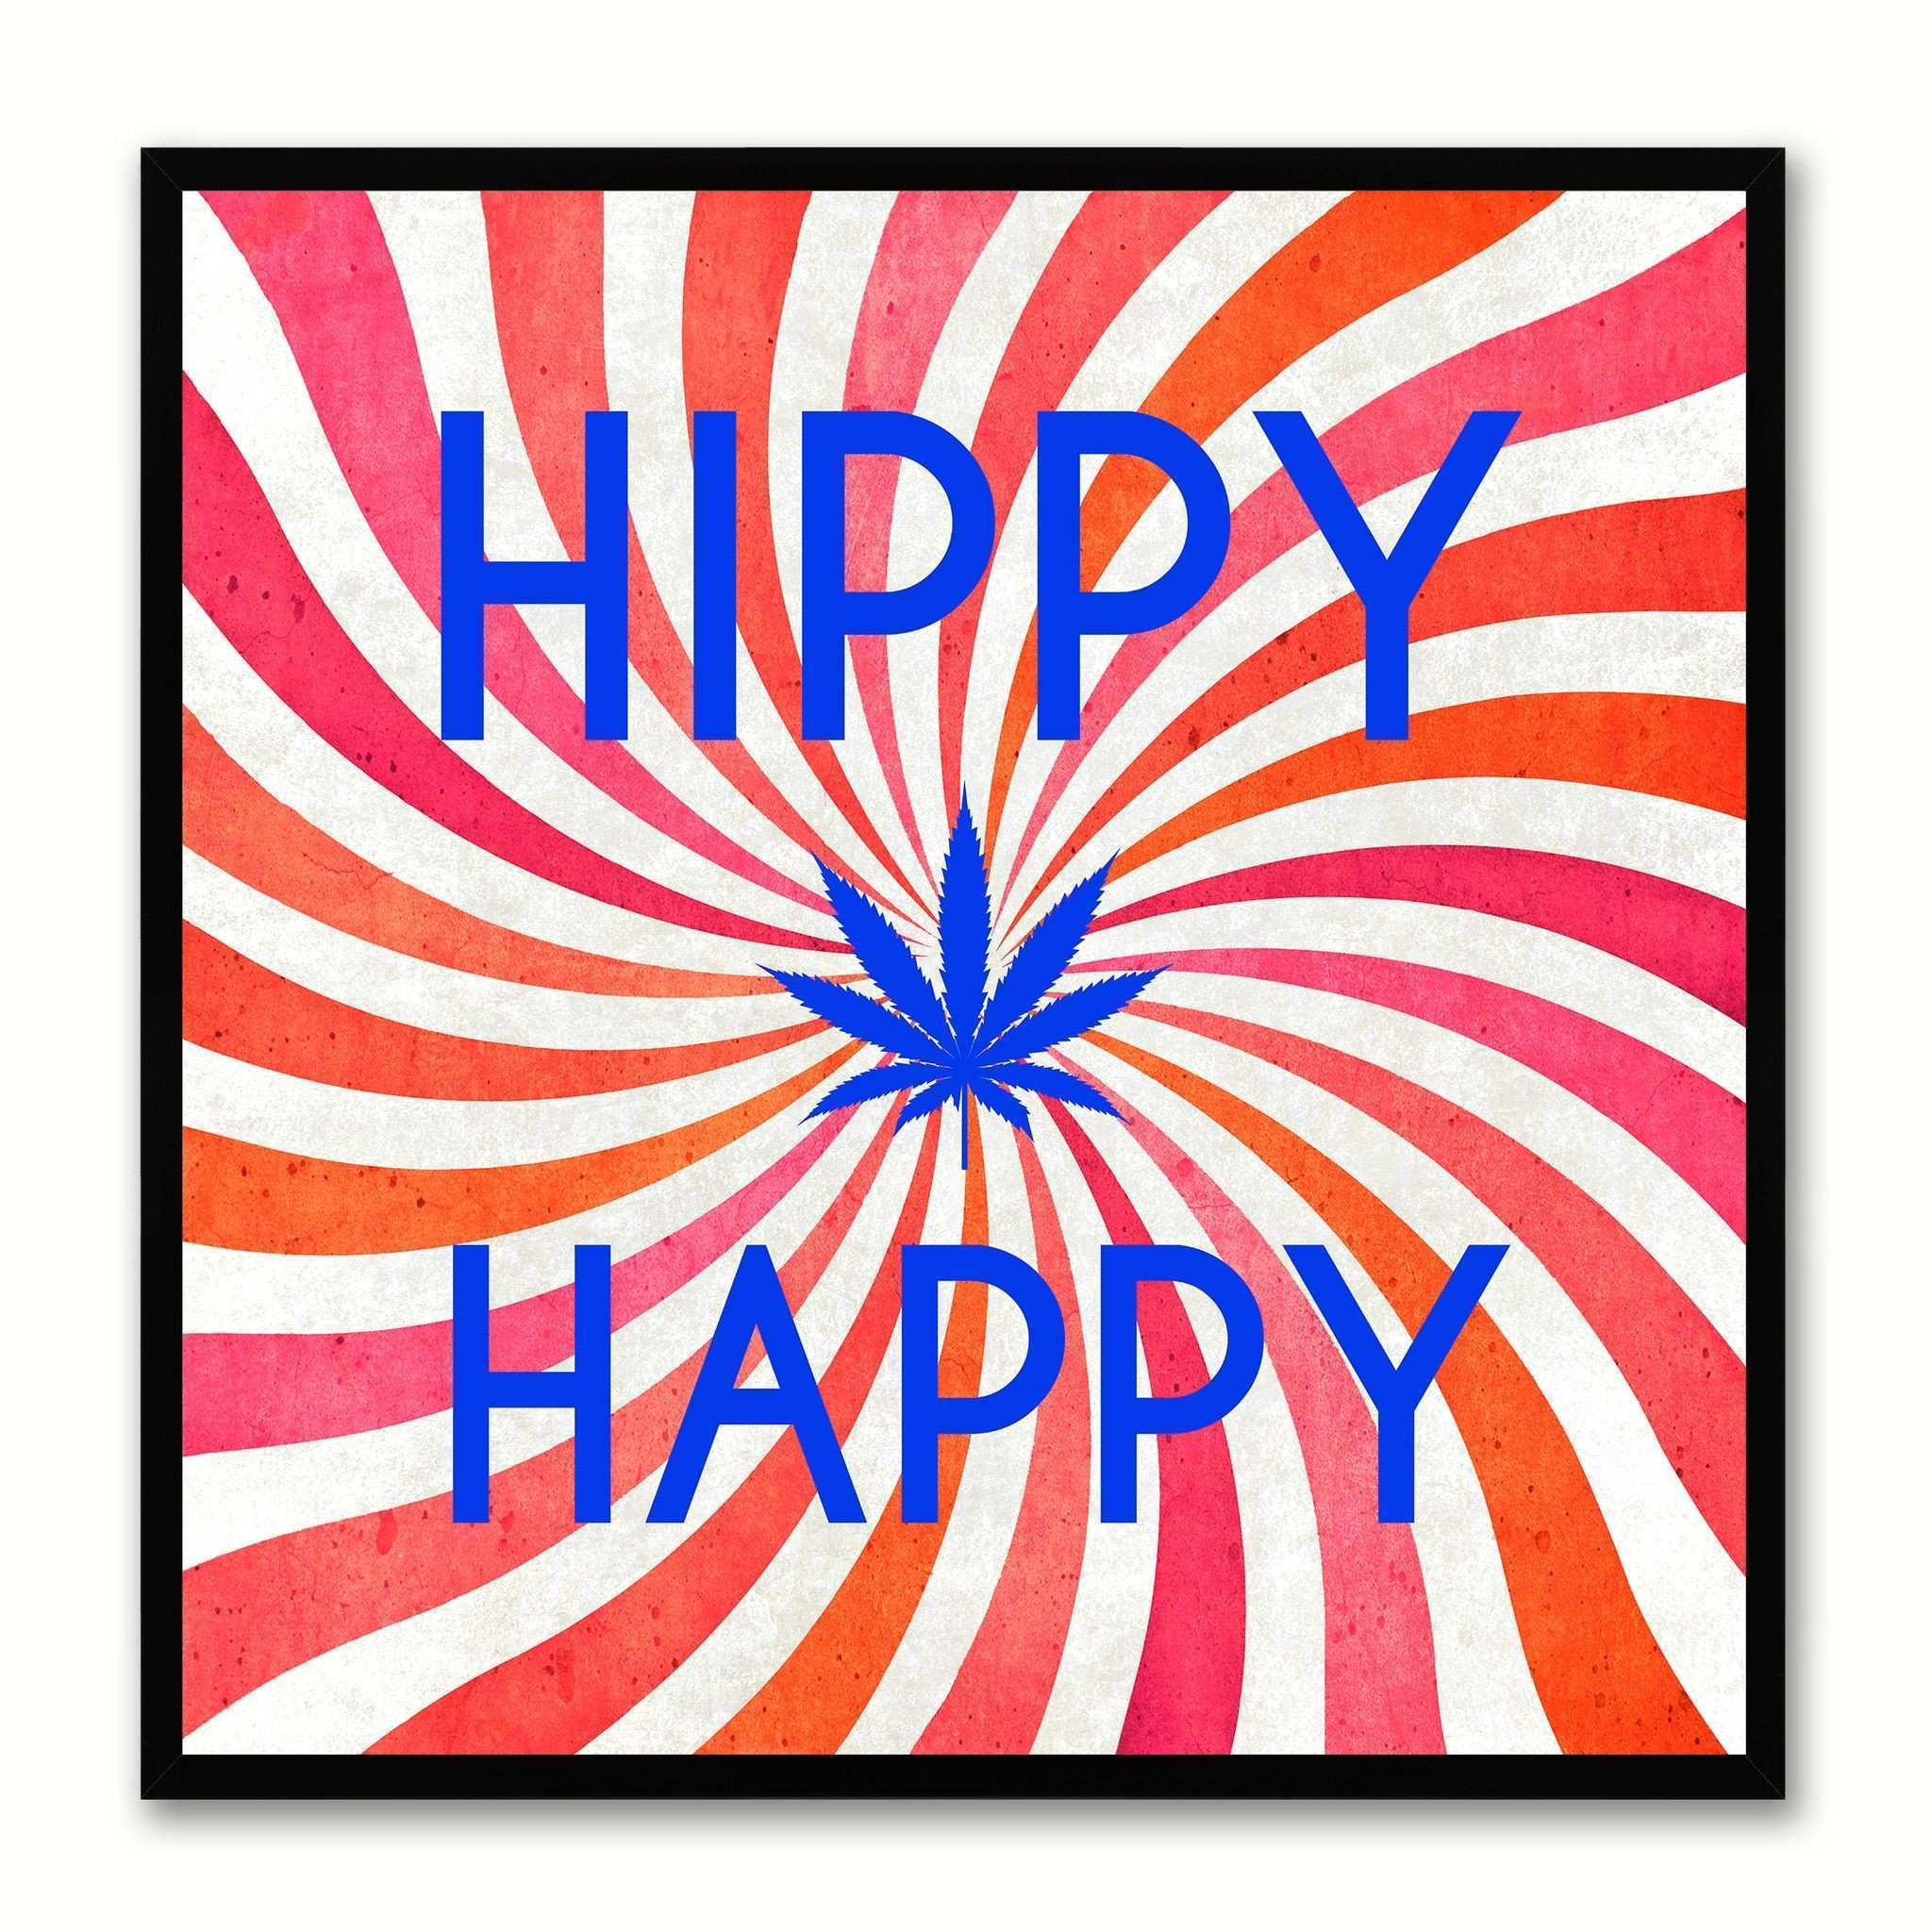 Hippy Happy Adult Sign Frame Gift Canvas Print Home Décor Wall Art